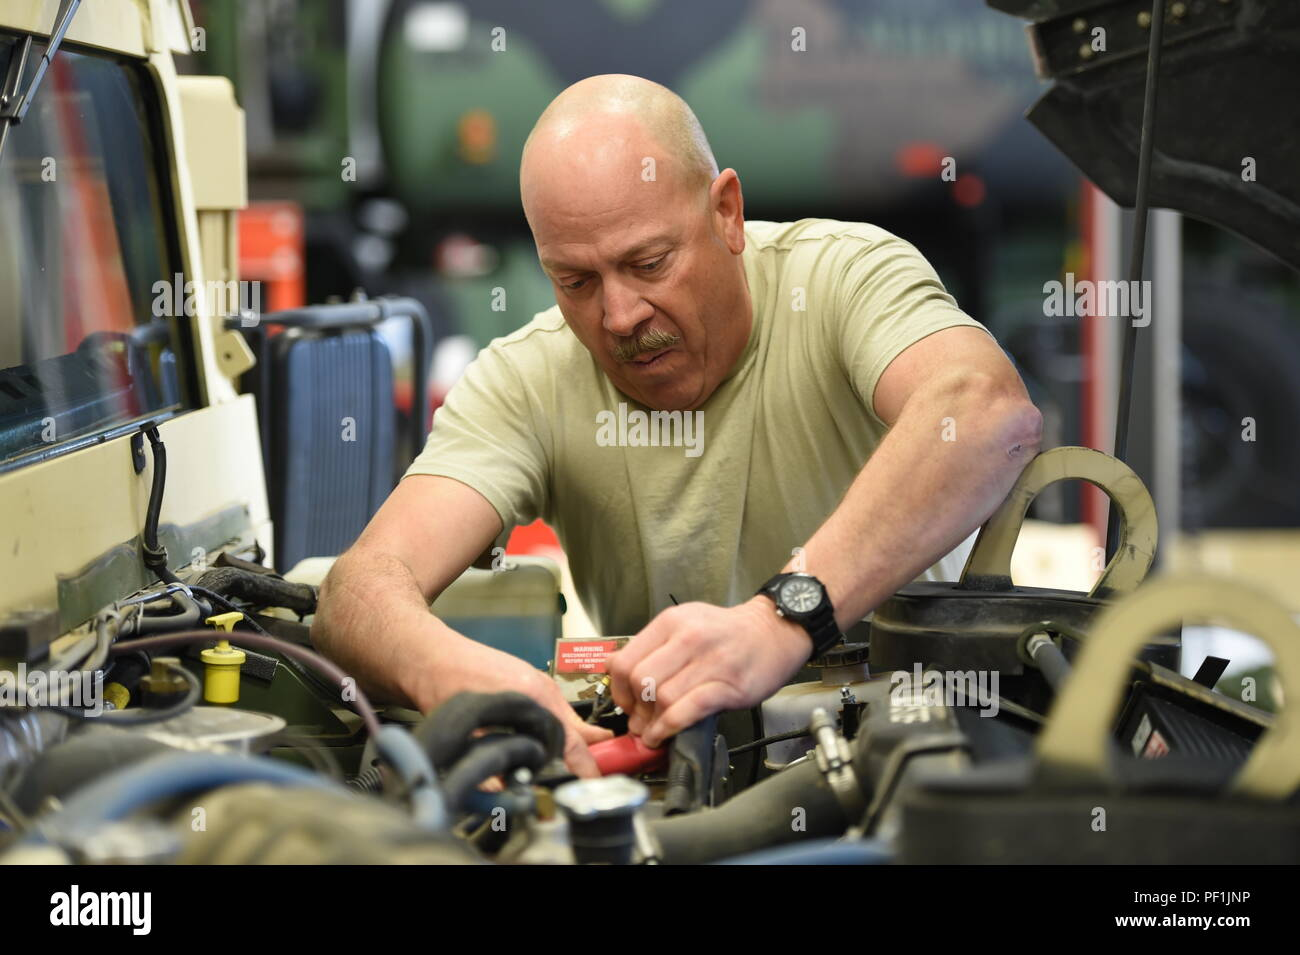 Wiring Harness Stock Photos Images Alamy Car Repair Sgt 1st Class Kevin Read Checks A On Humvee At The Field